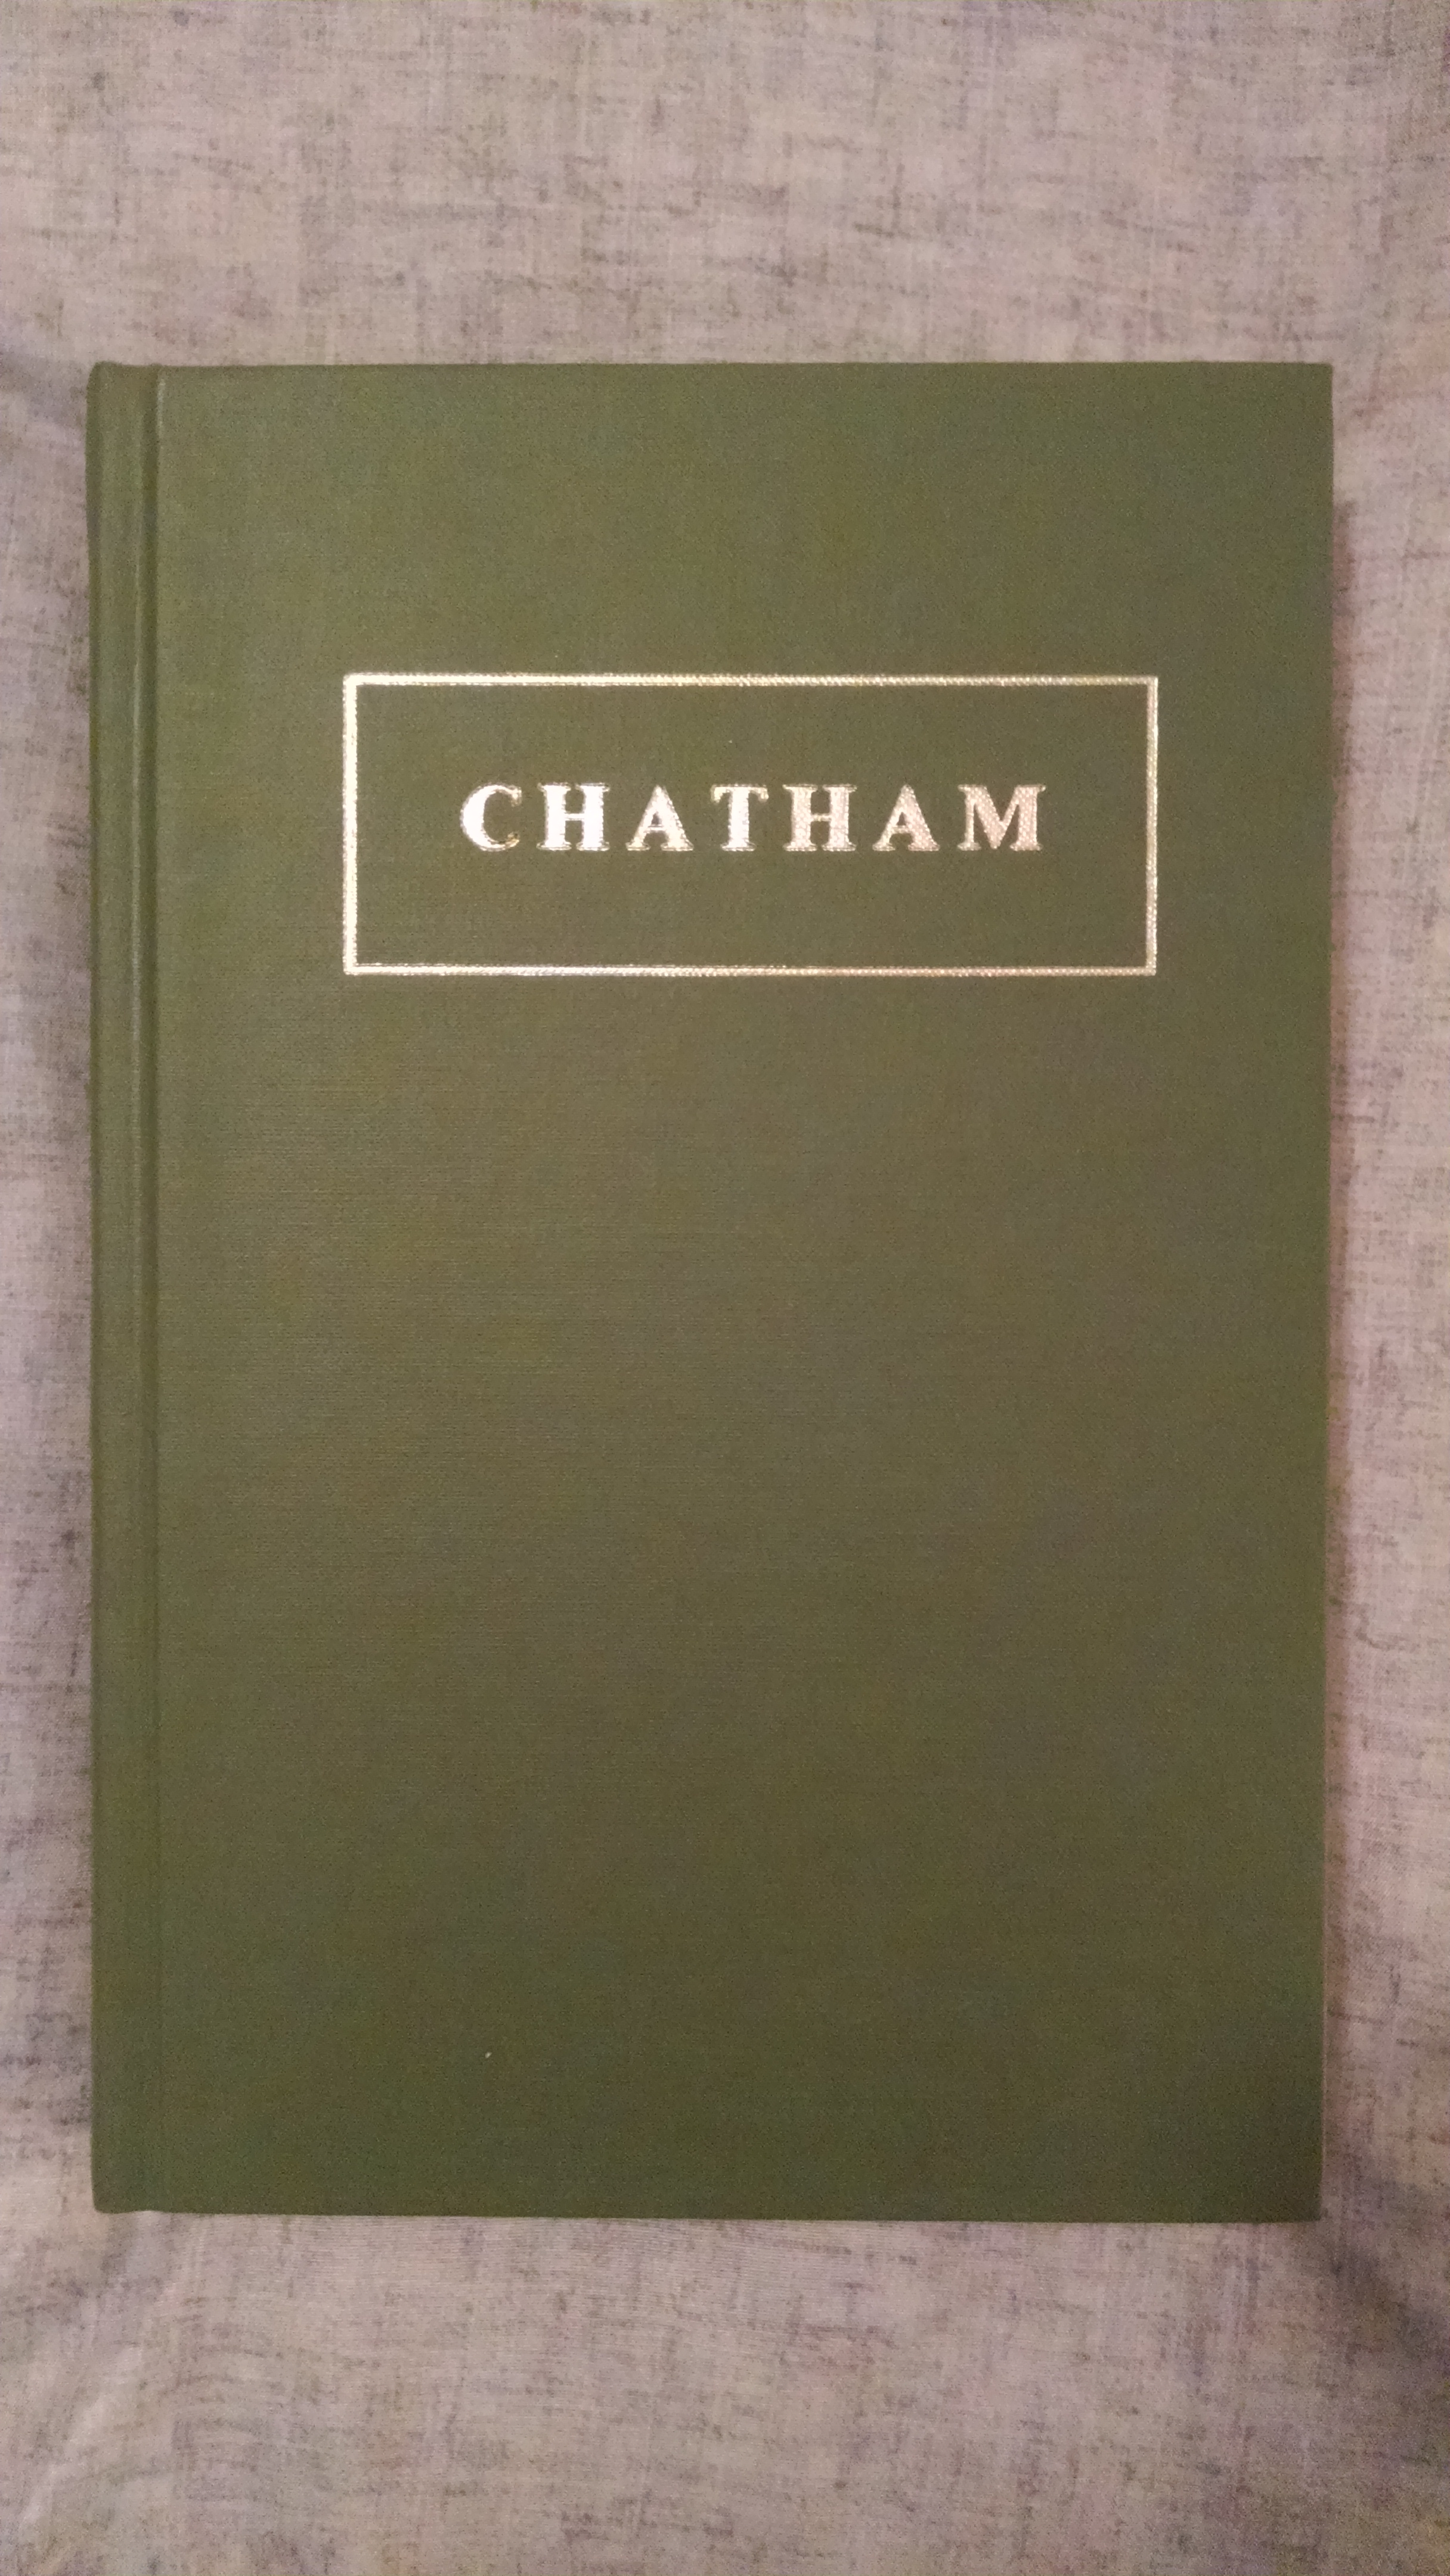 Image for A HISTORY OF CHATHAM MASSACHUSETTS